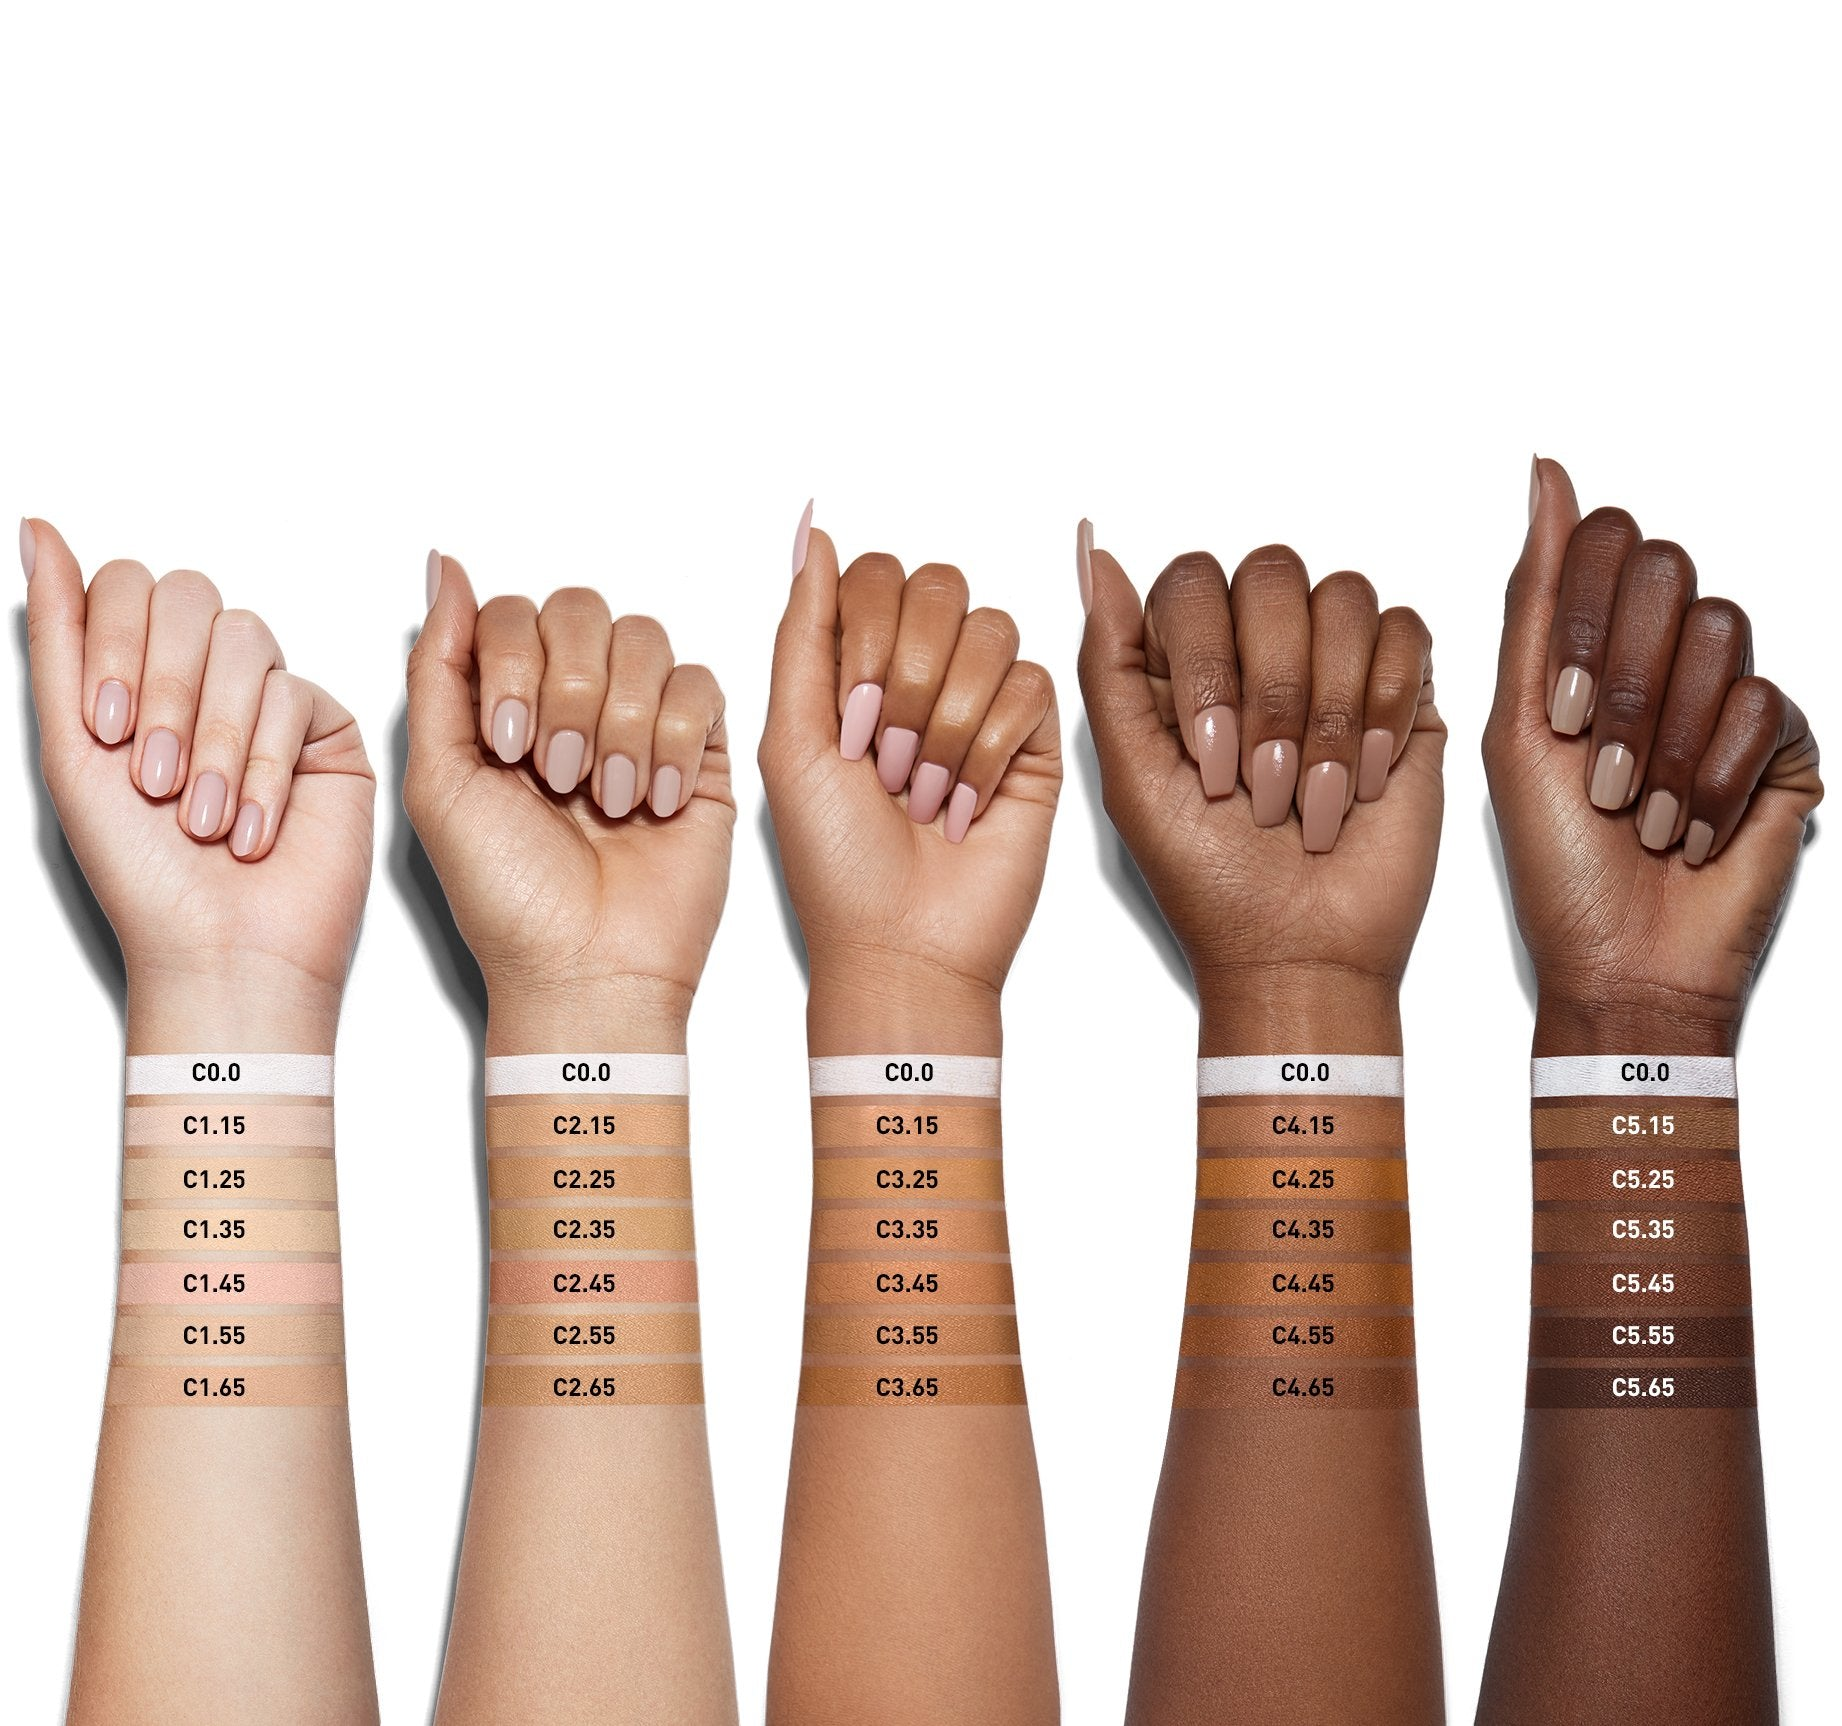 FLUIDITY FULL-COVERAGE CONCEALER - C3.65 ARM SWATCHES, view larger image